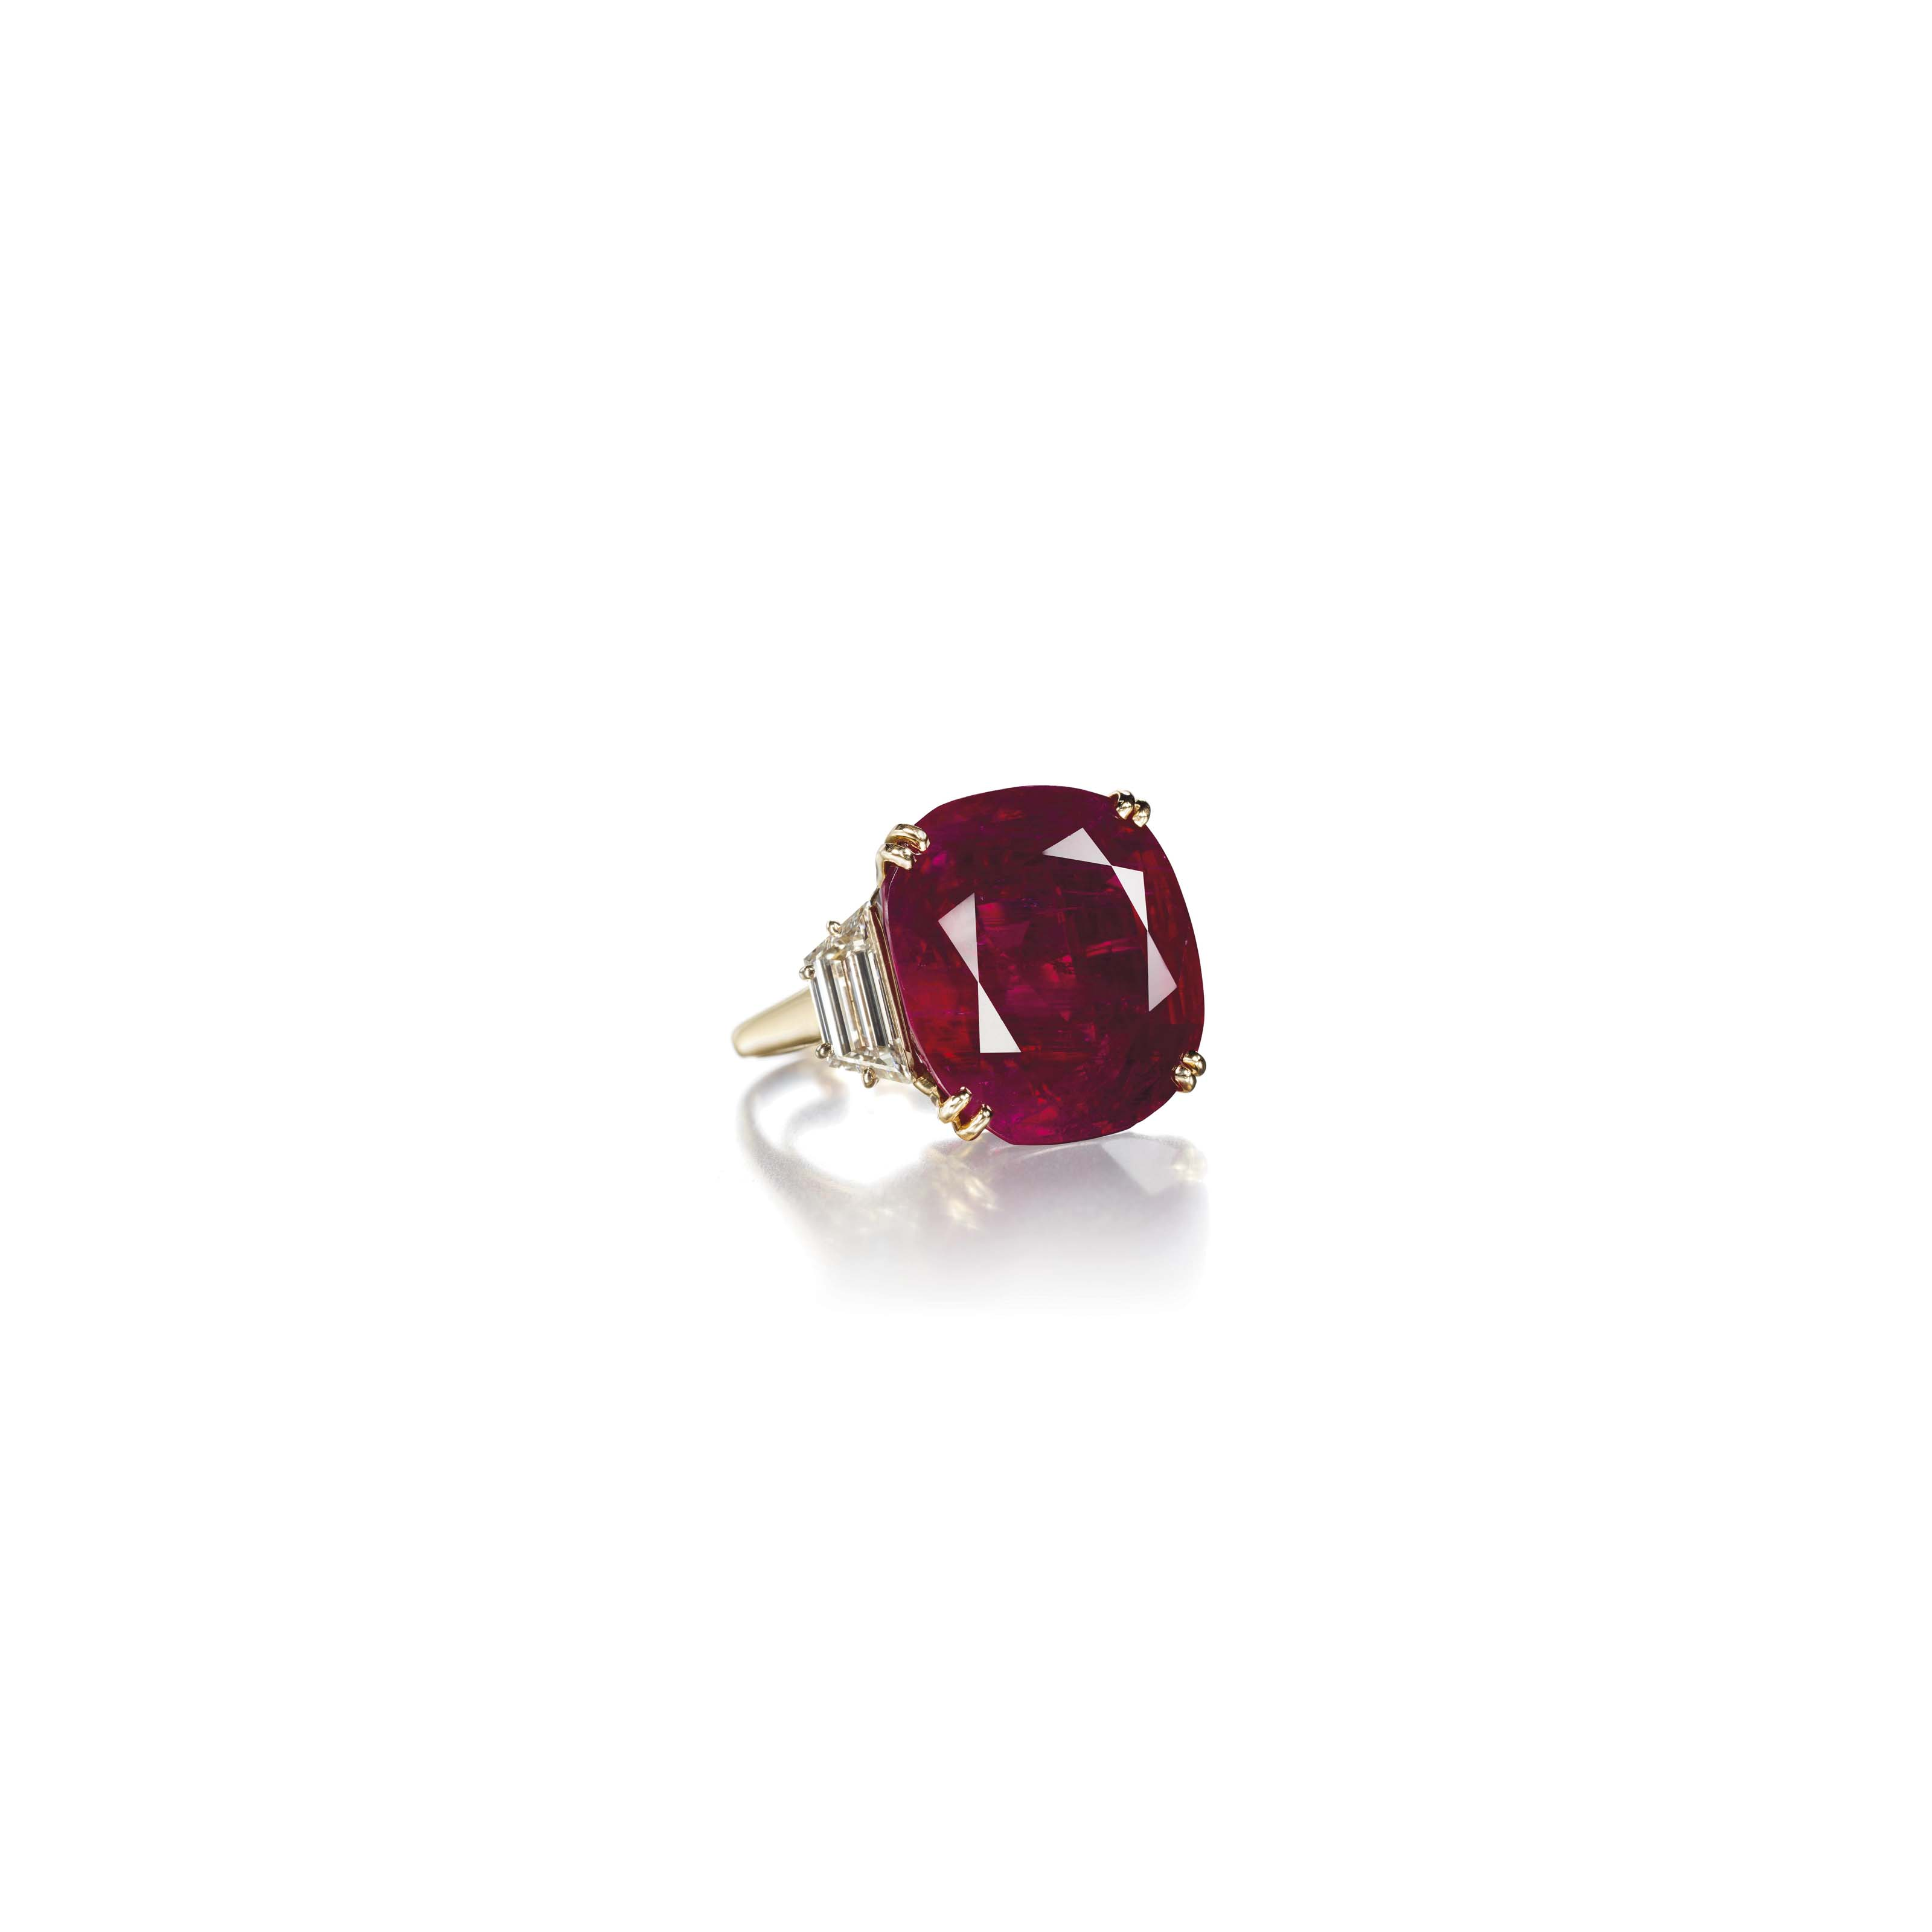 A RUBY AND DIAMOND RING, BY CH